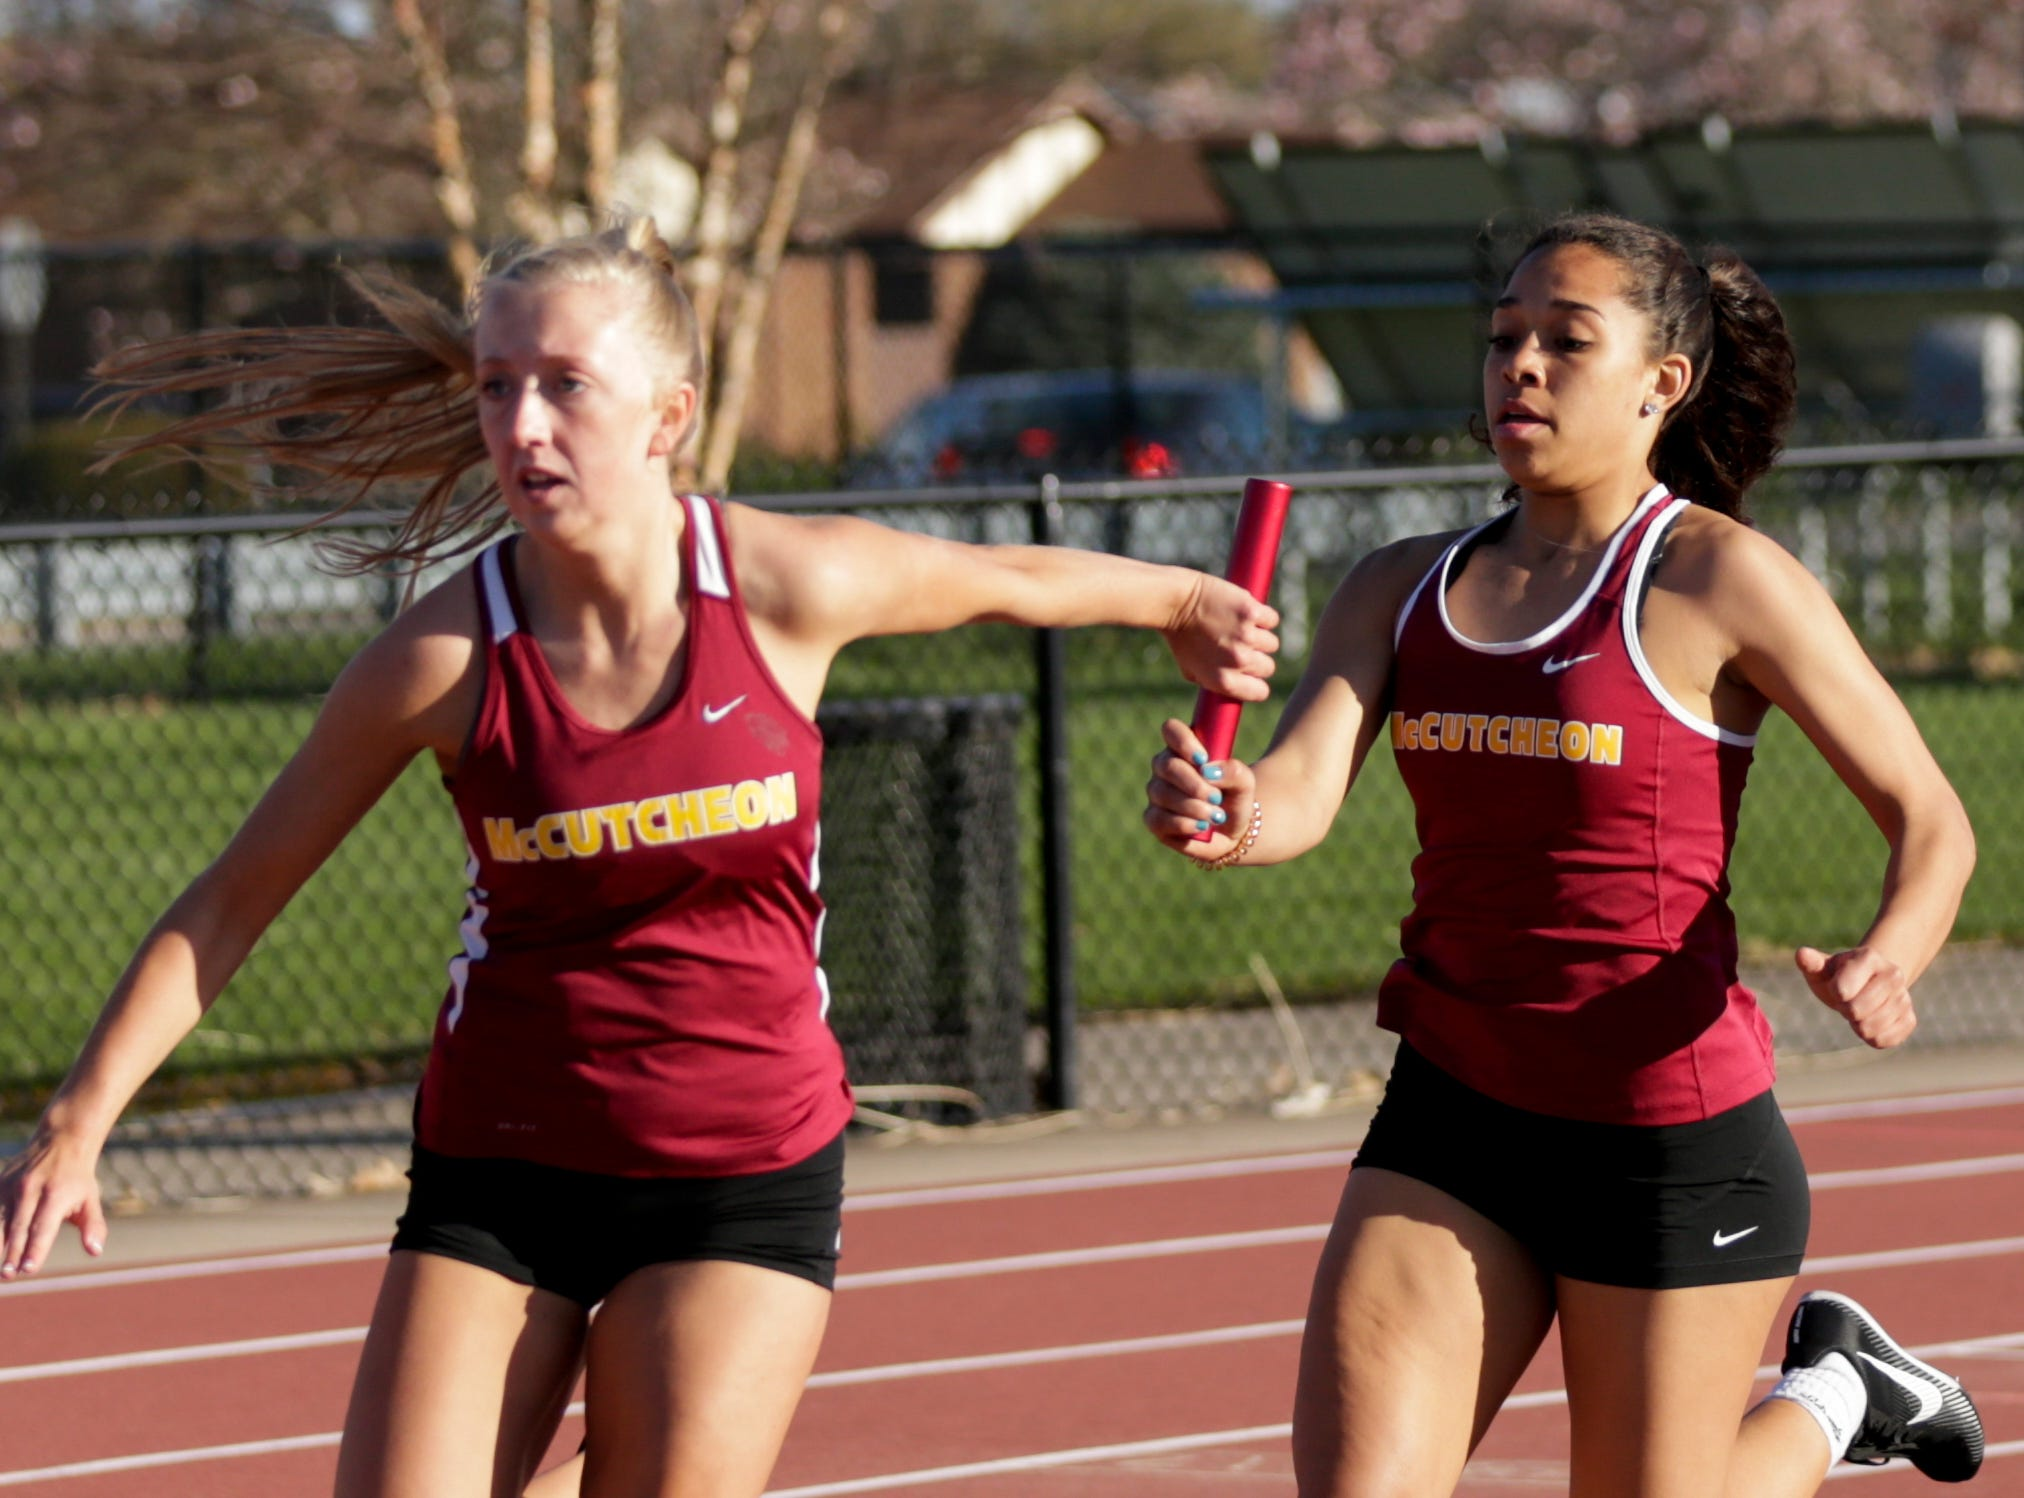 McCutcheon runners compete in the women's 4x100 meter relay during the 2019 Sprinters Showcase, Friday, April 12, 2019, at Lafayette Jeff High School in Lafayette.